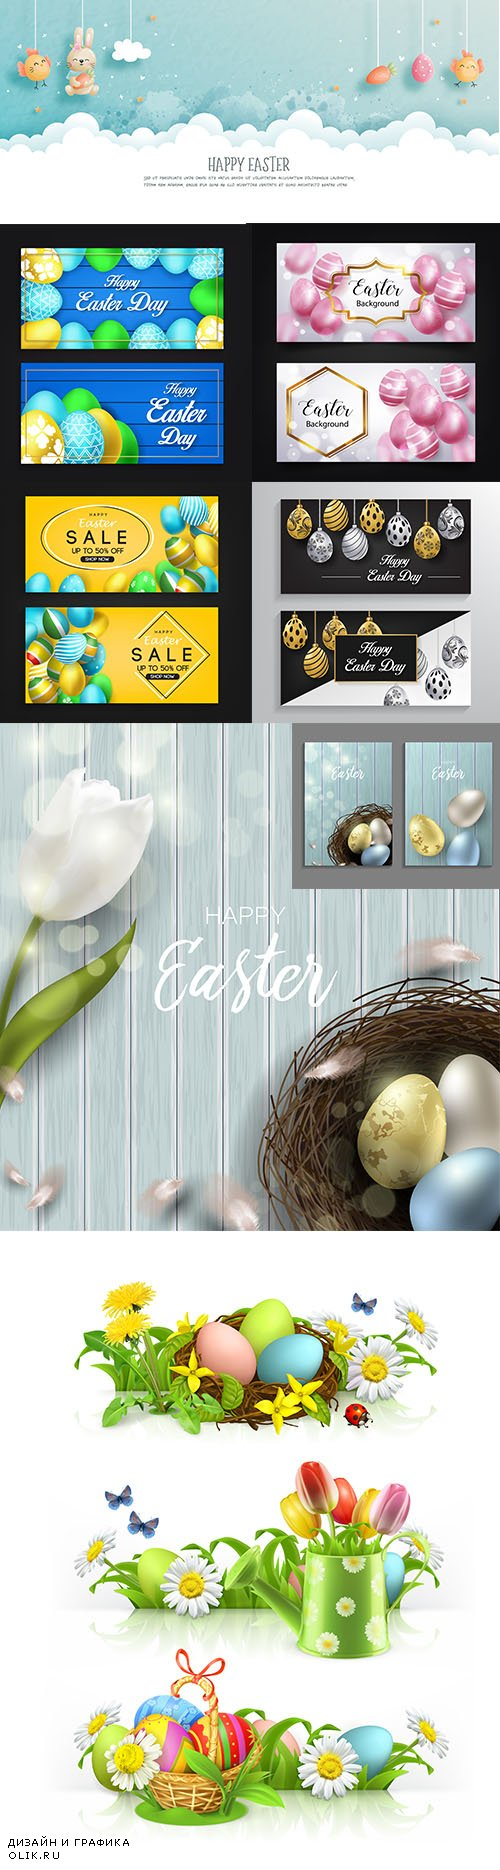 Happy Easter Day Premium Illustrations Set